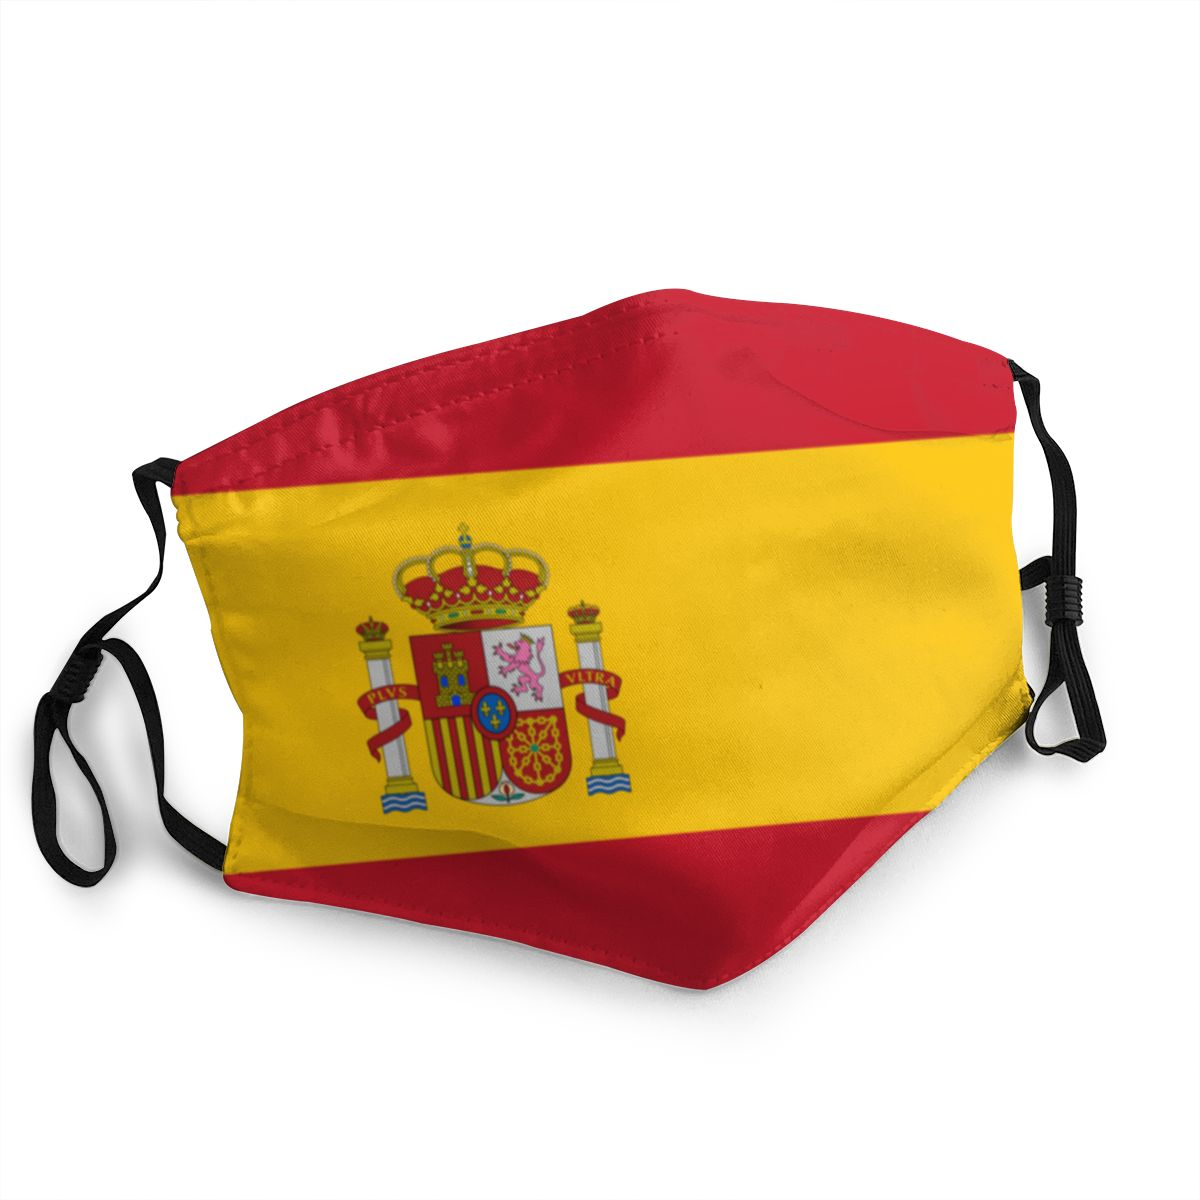 Flag Of Spain Unisex Non-Disposable Mouth Face Mask Anti Bacterial Dust Protection Cover Respirator